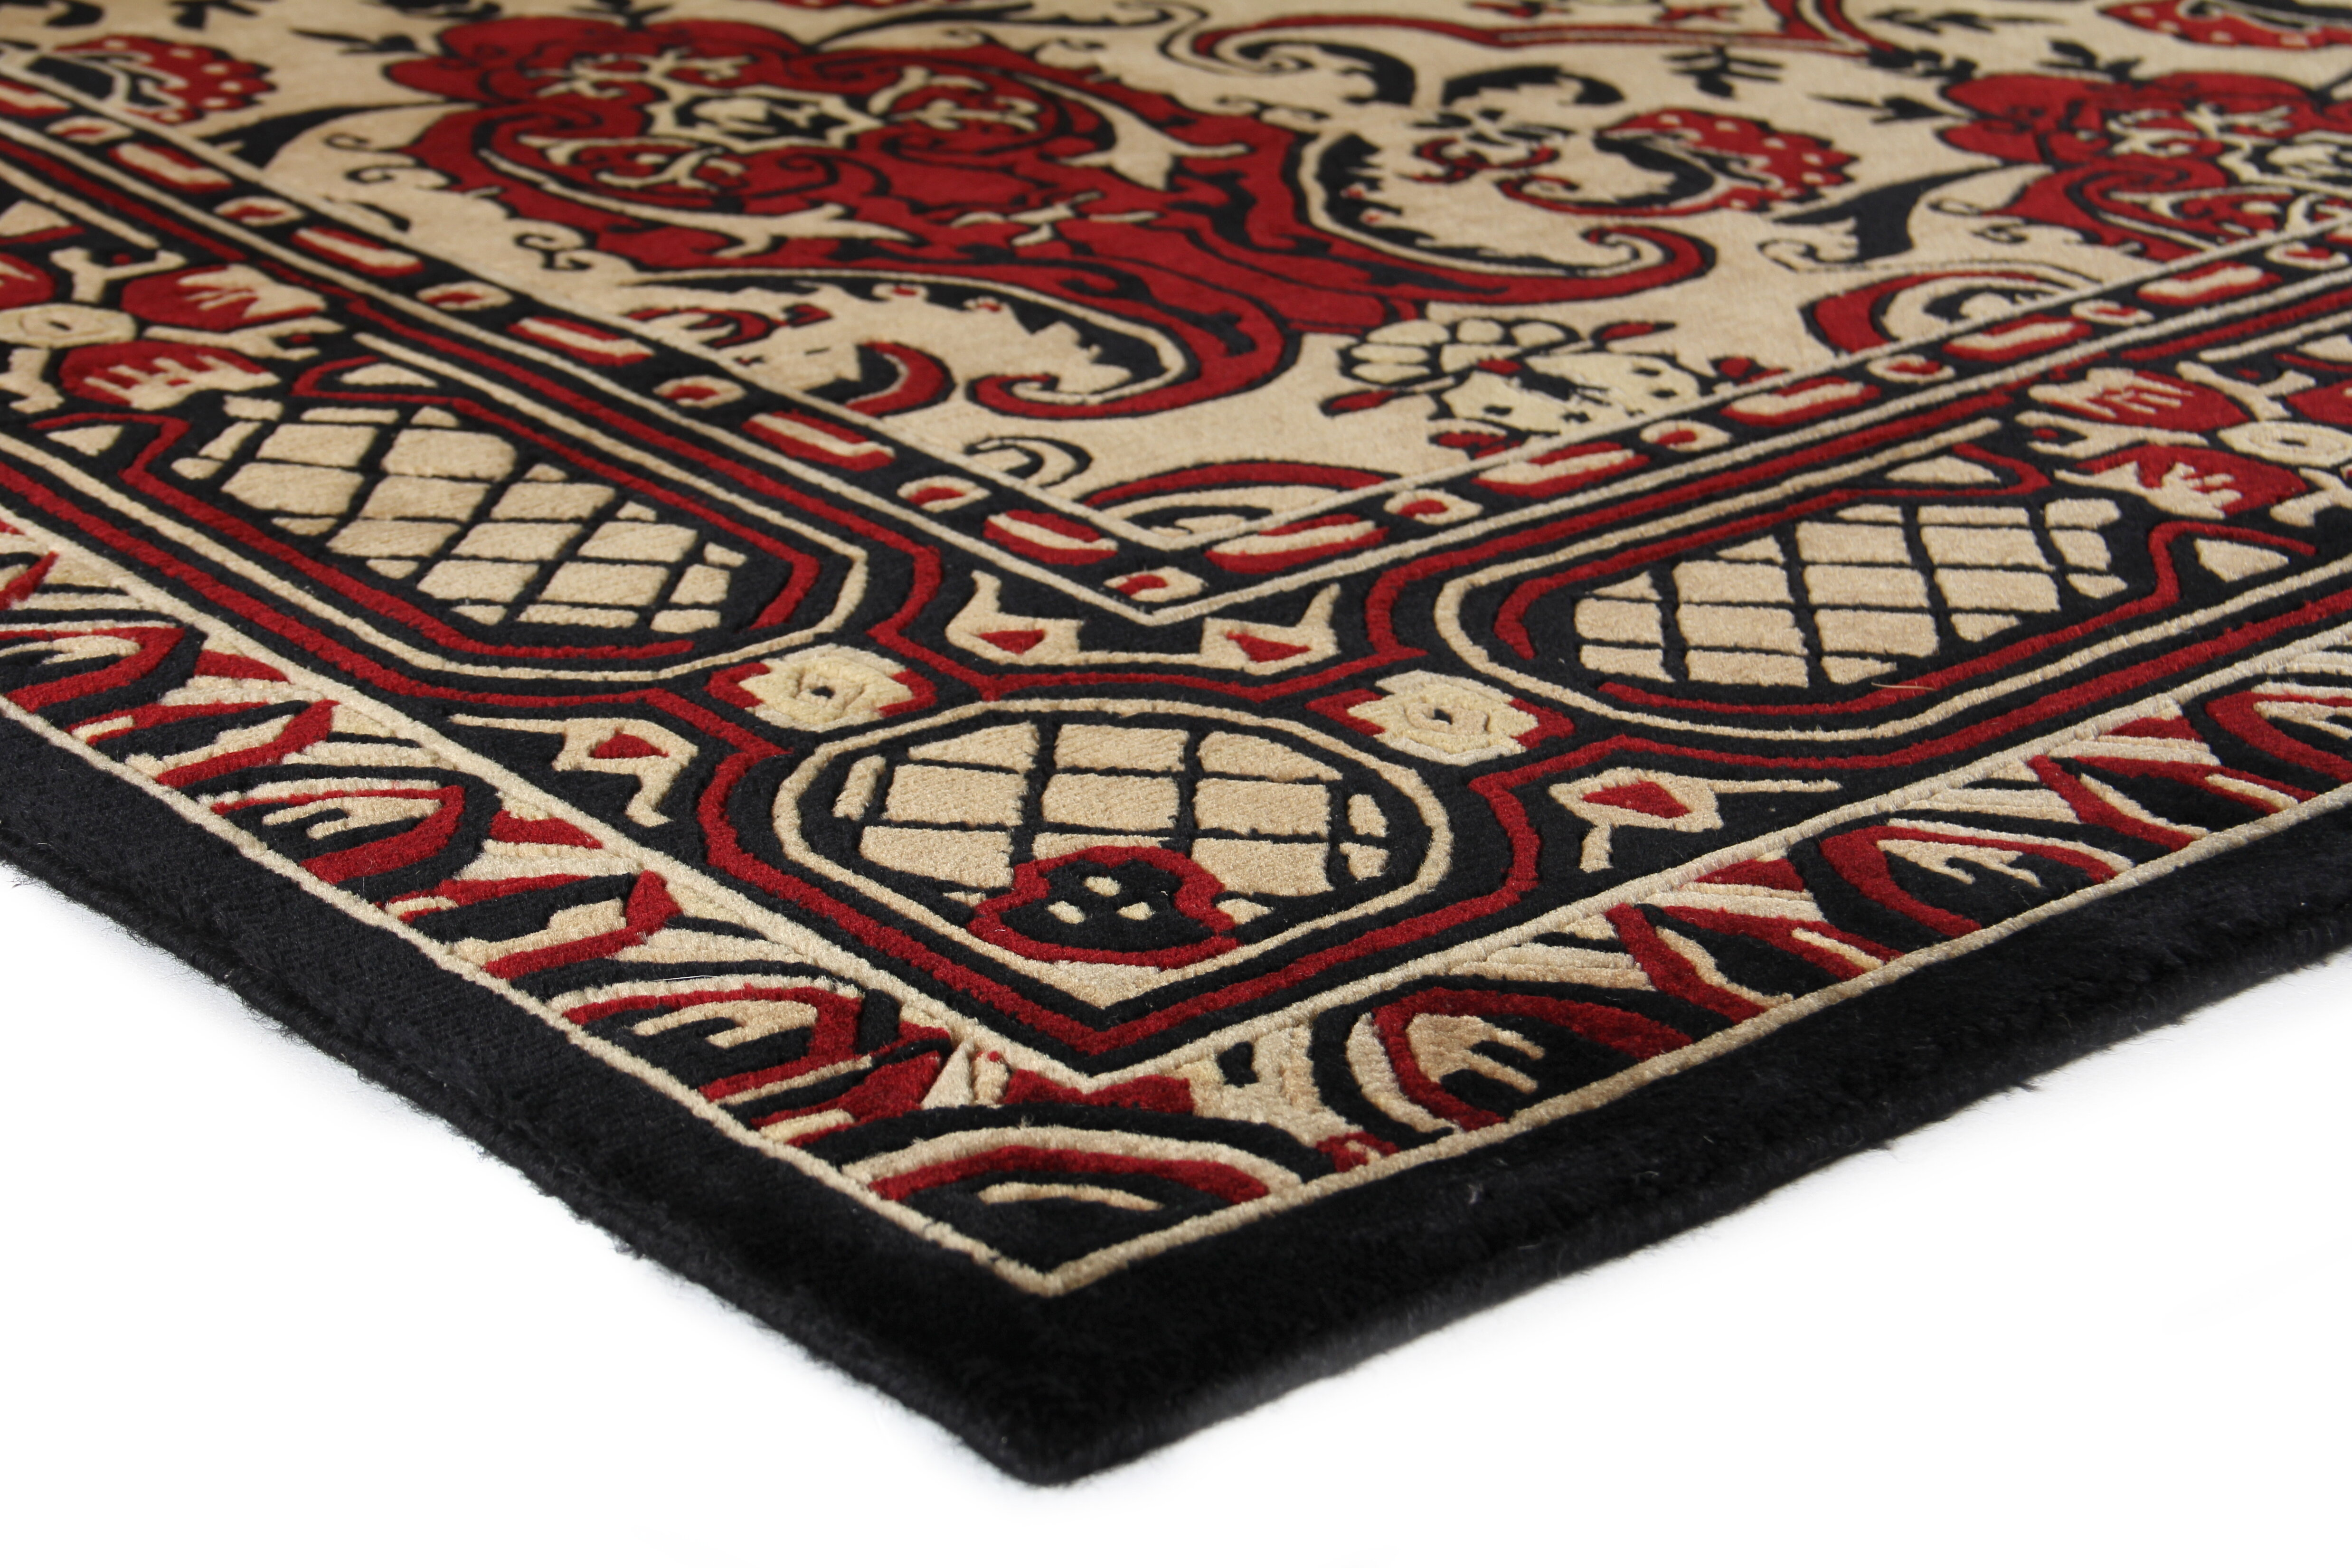 Exquisite Rugs Oriental Hand Knotted Wool Black Red Area Rug Wayfair